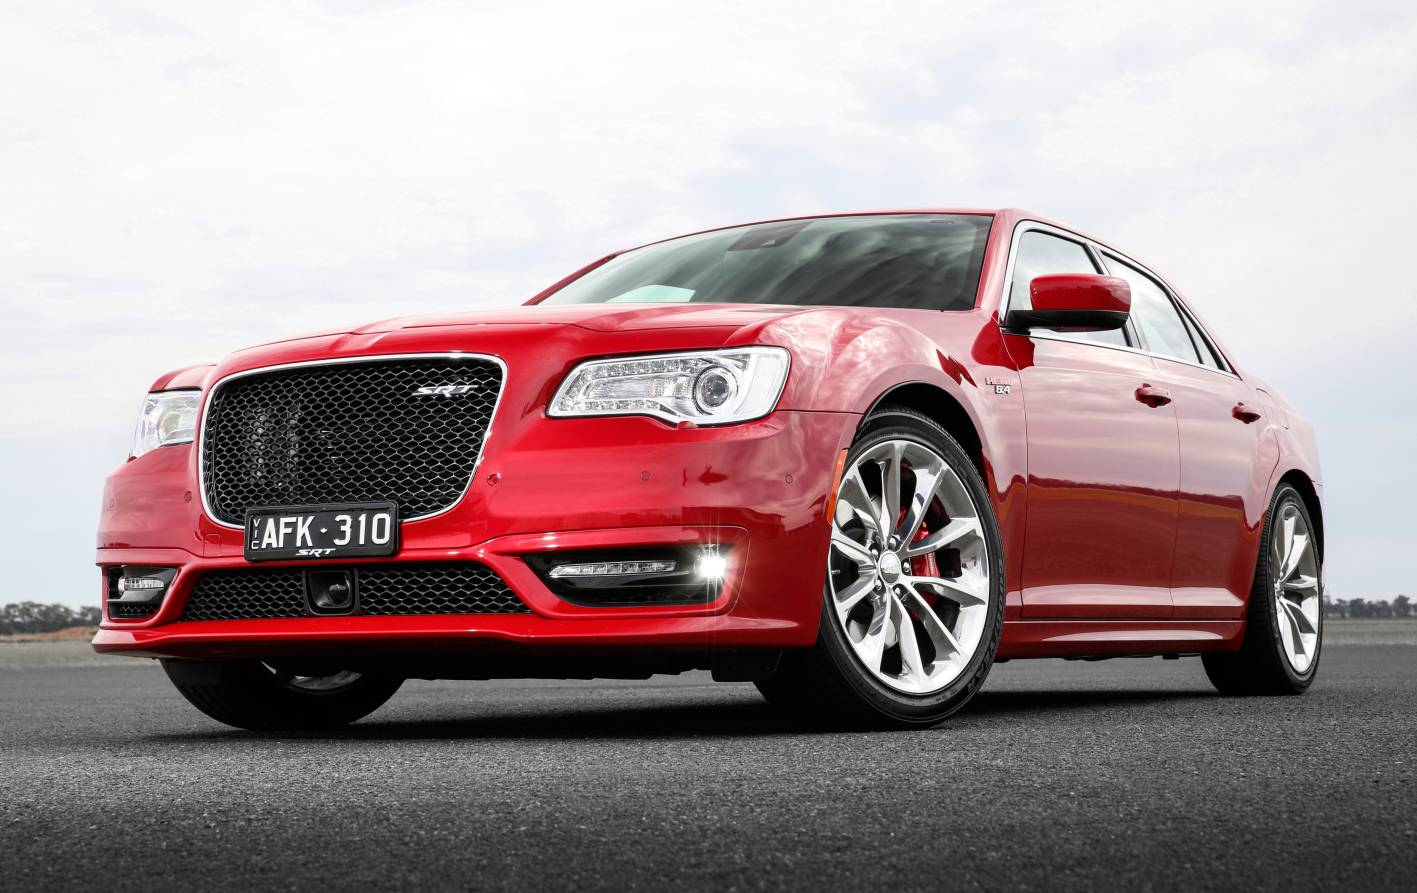 Chrysler 300 2016 Hemi >> Revised 2015 Chrysler 300 SRT returns to head line-up - ForceGT.com